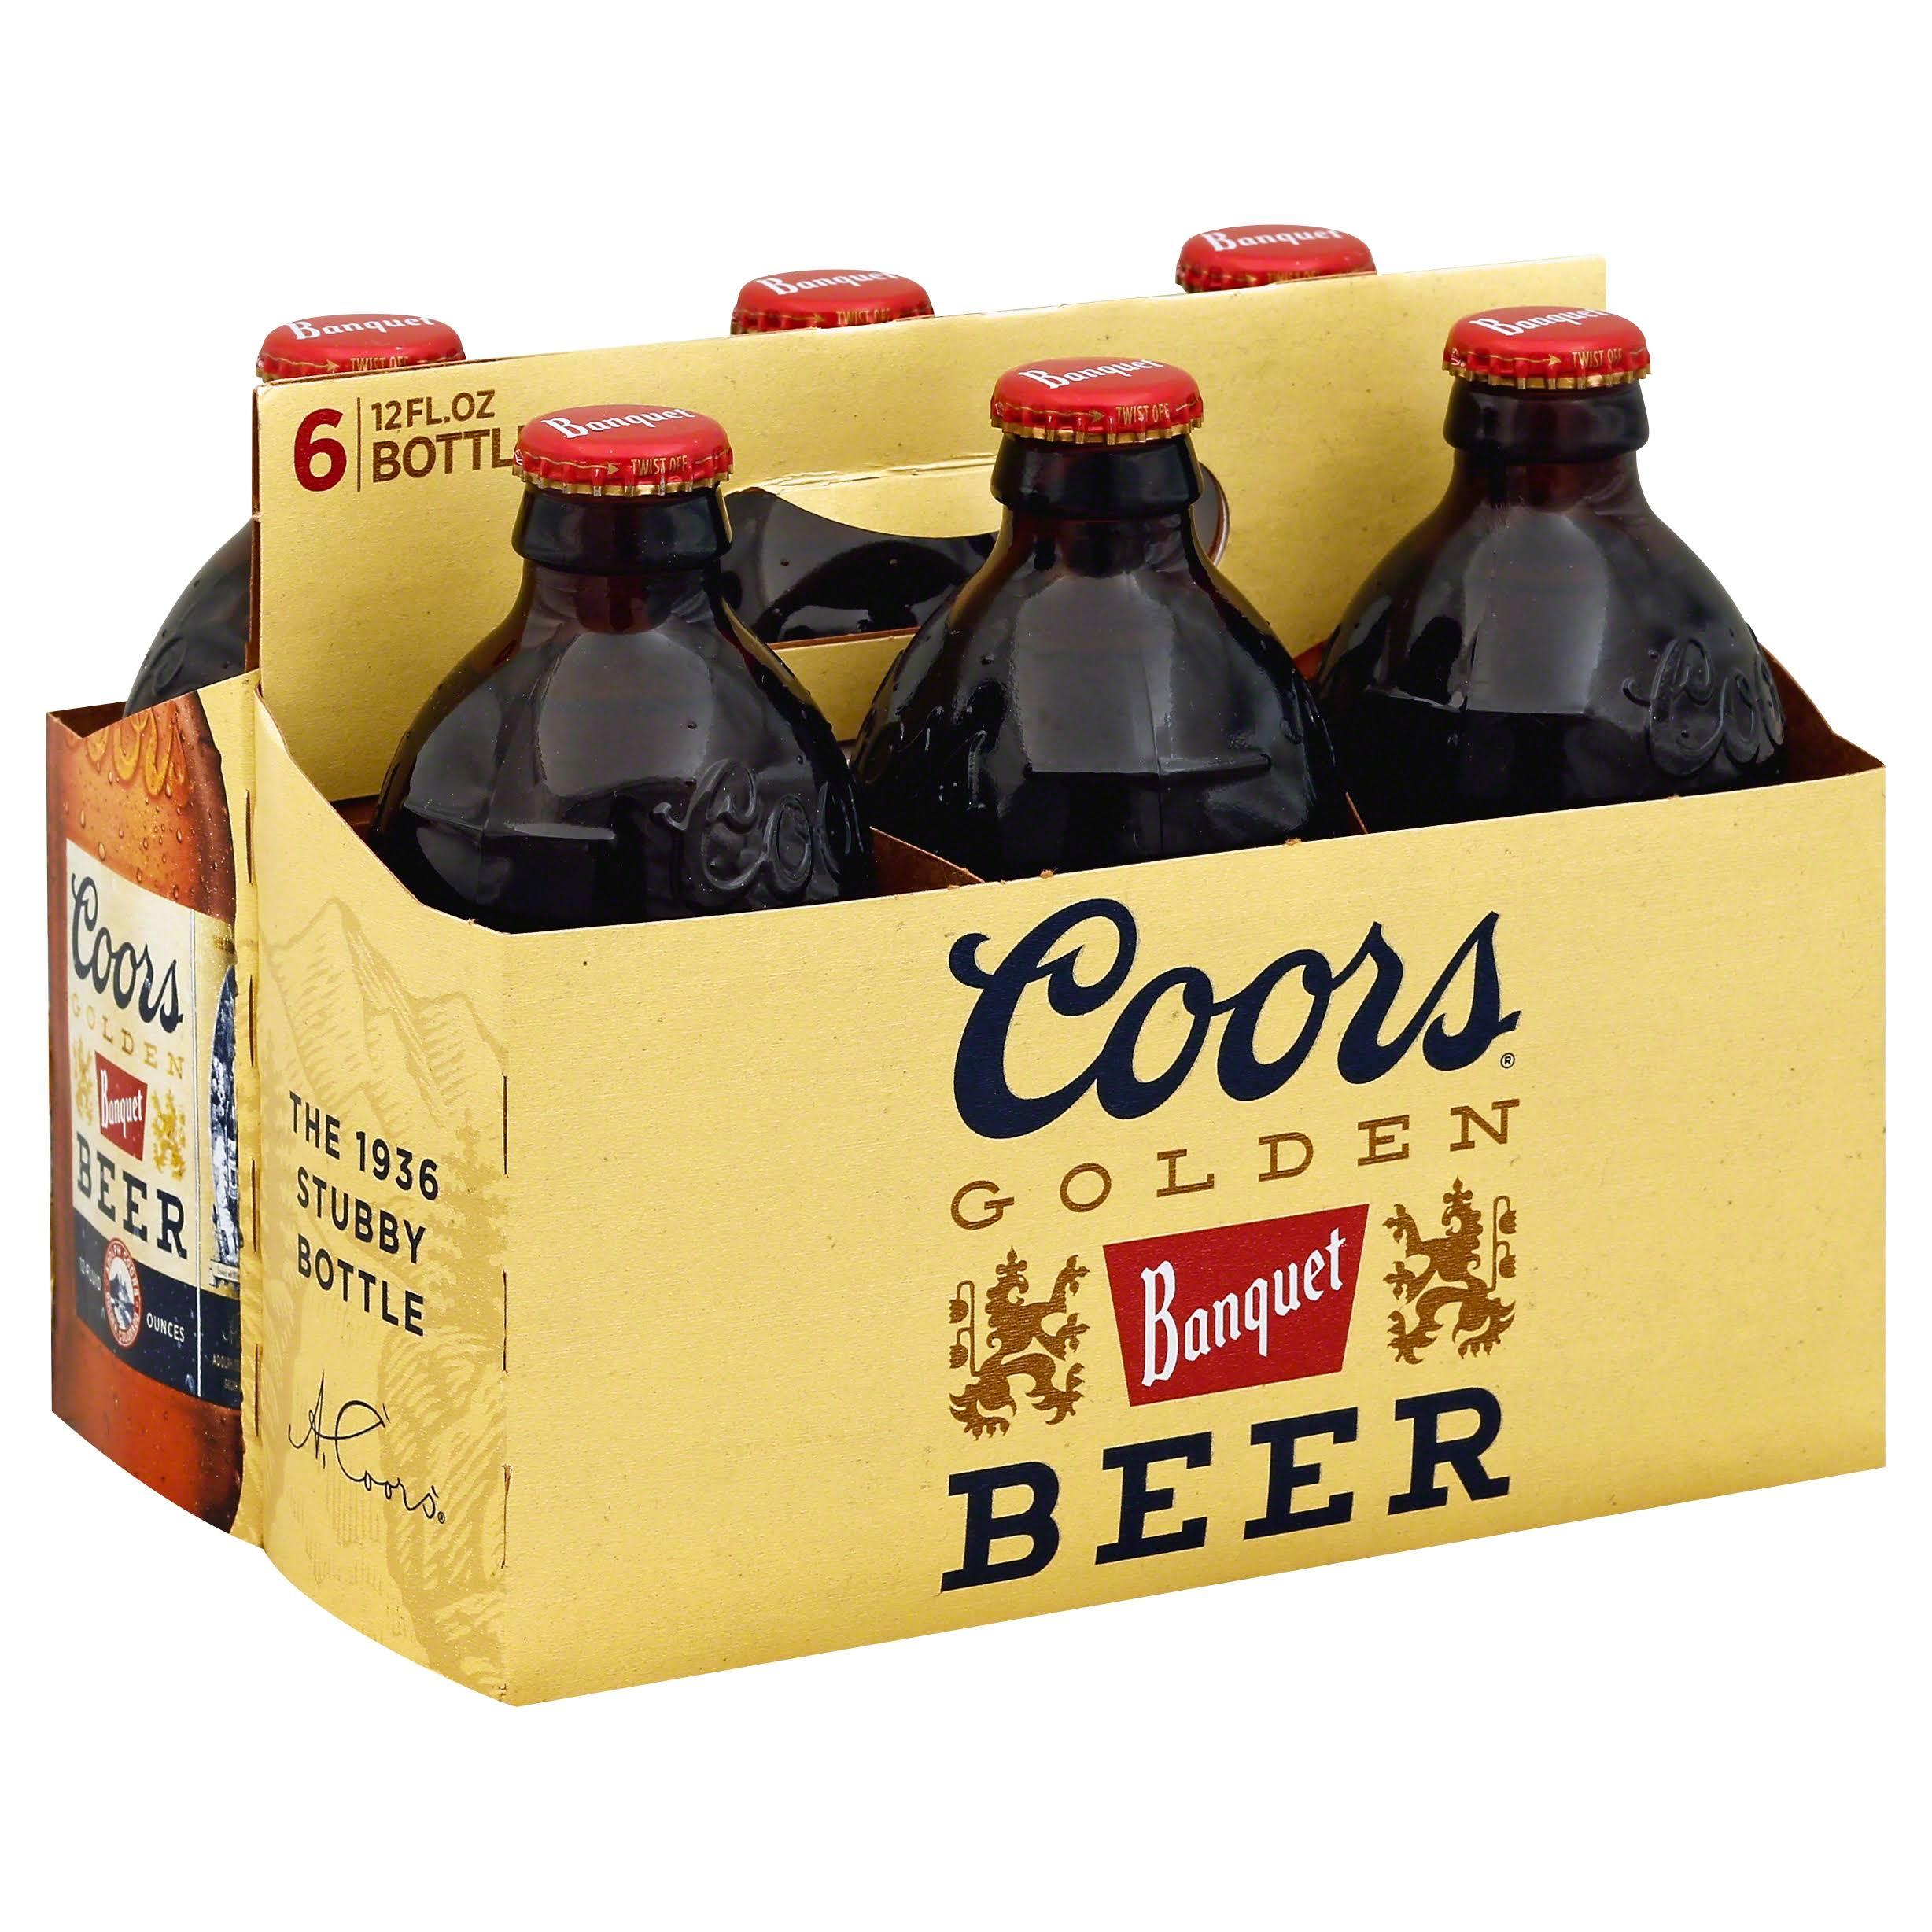 Coors Golden Banquet Beer - 6 Bottles